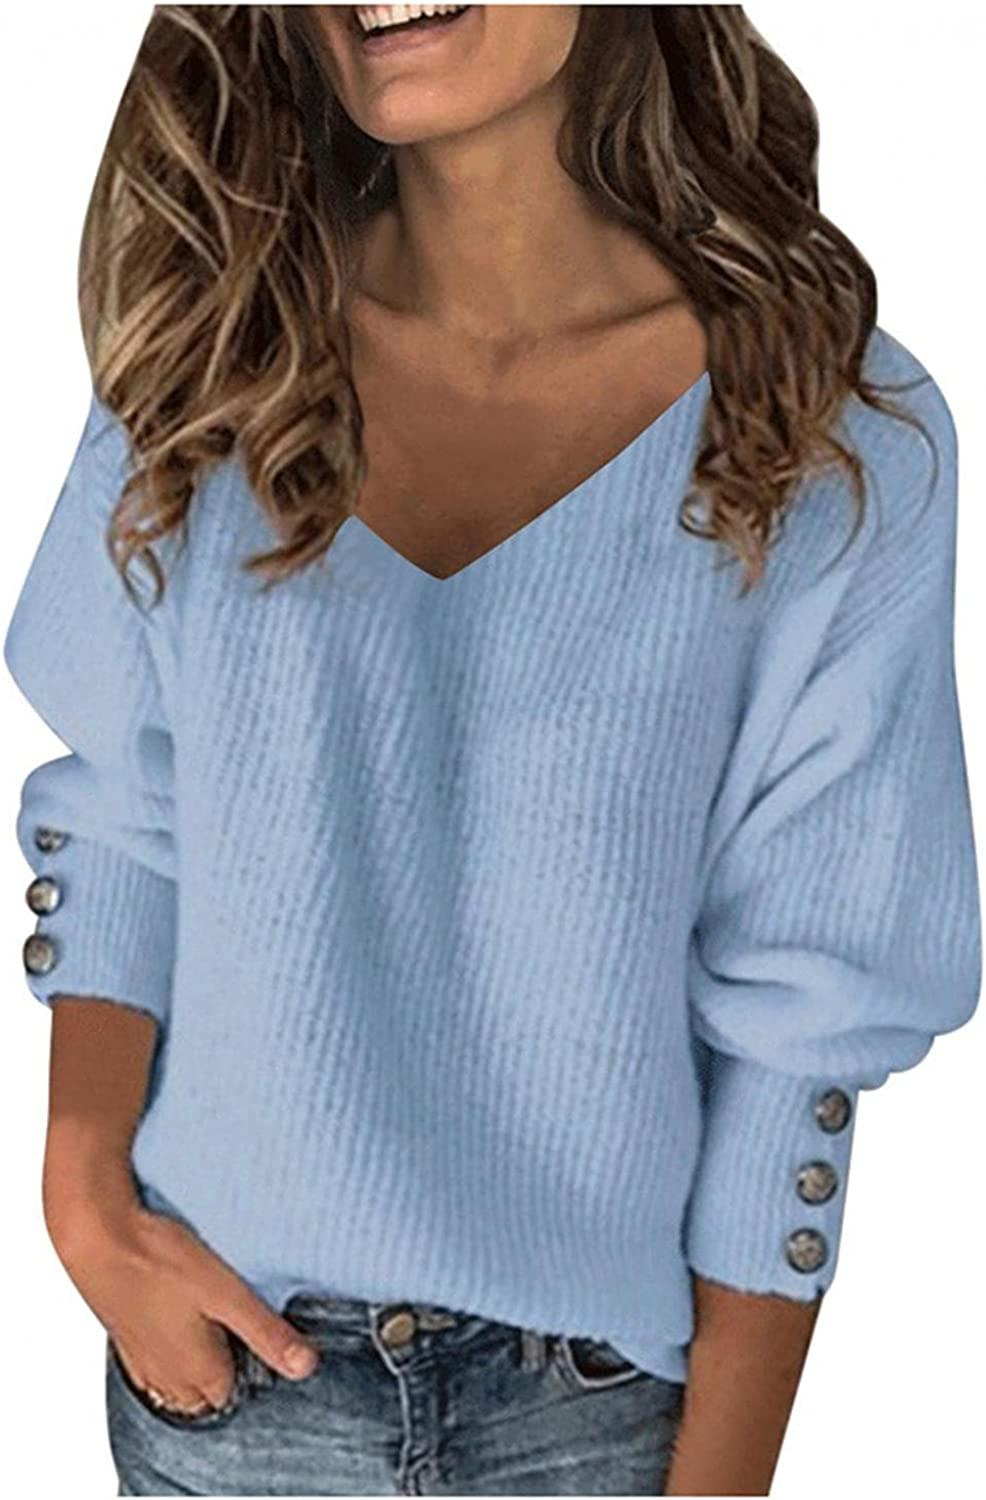 Sweaters for Women Casual Drop Shoulder Long Sleeve Knit V Neck Button Sexy Pullover Sweaters